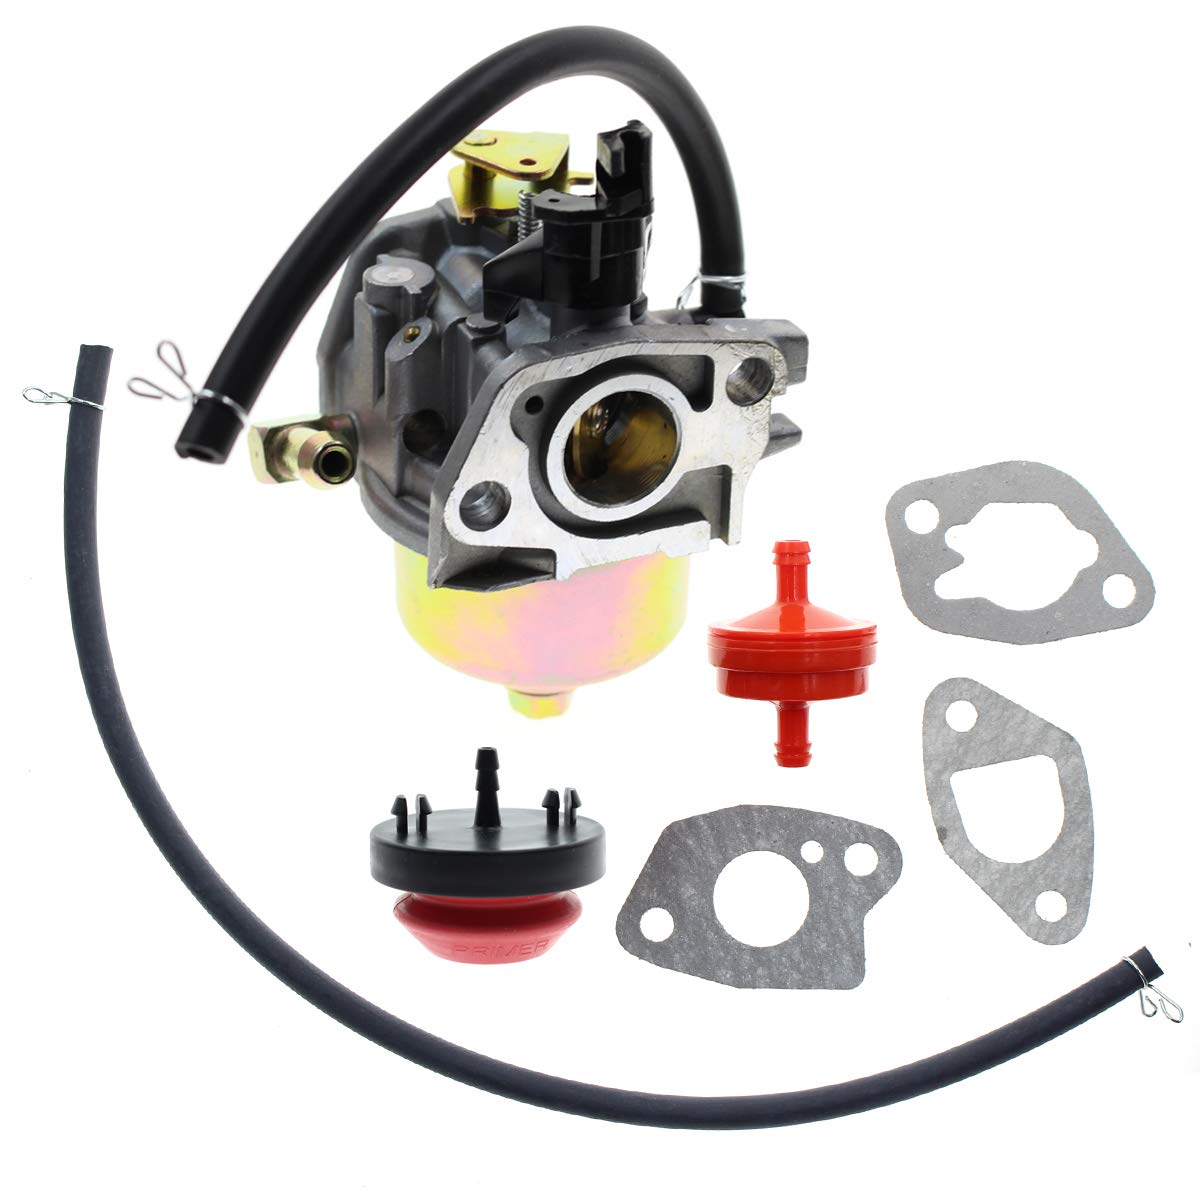 Carbhub 170S HUAYI Carburetor for HUAYI 170SA Yard Machine Snow Blower MTD 951-10368 951-10638A 751-10638 751-10638A 951-14026A 951-14027A - Troy Bilt Carburetor Replace 951-10638A Carbour